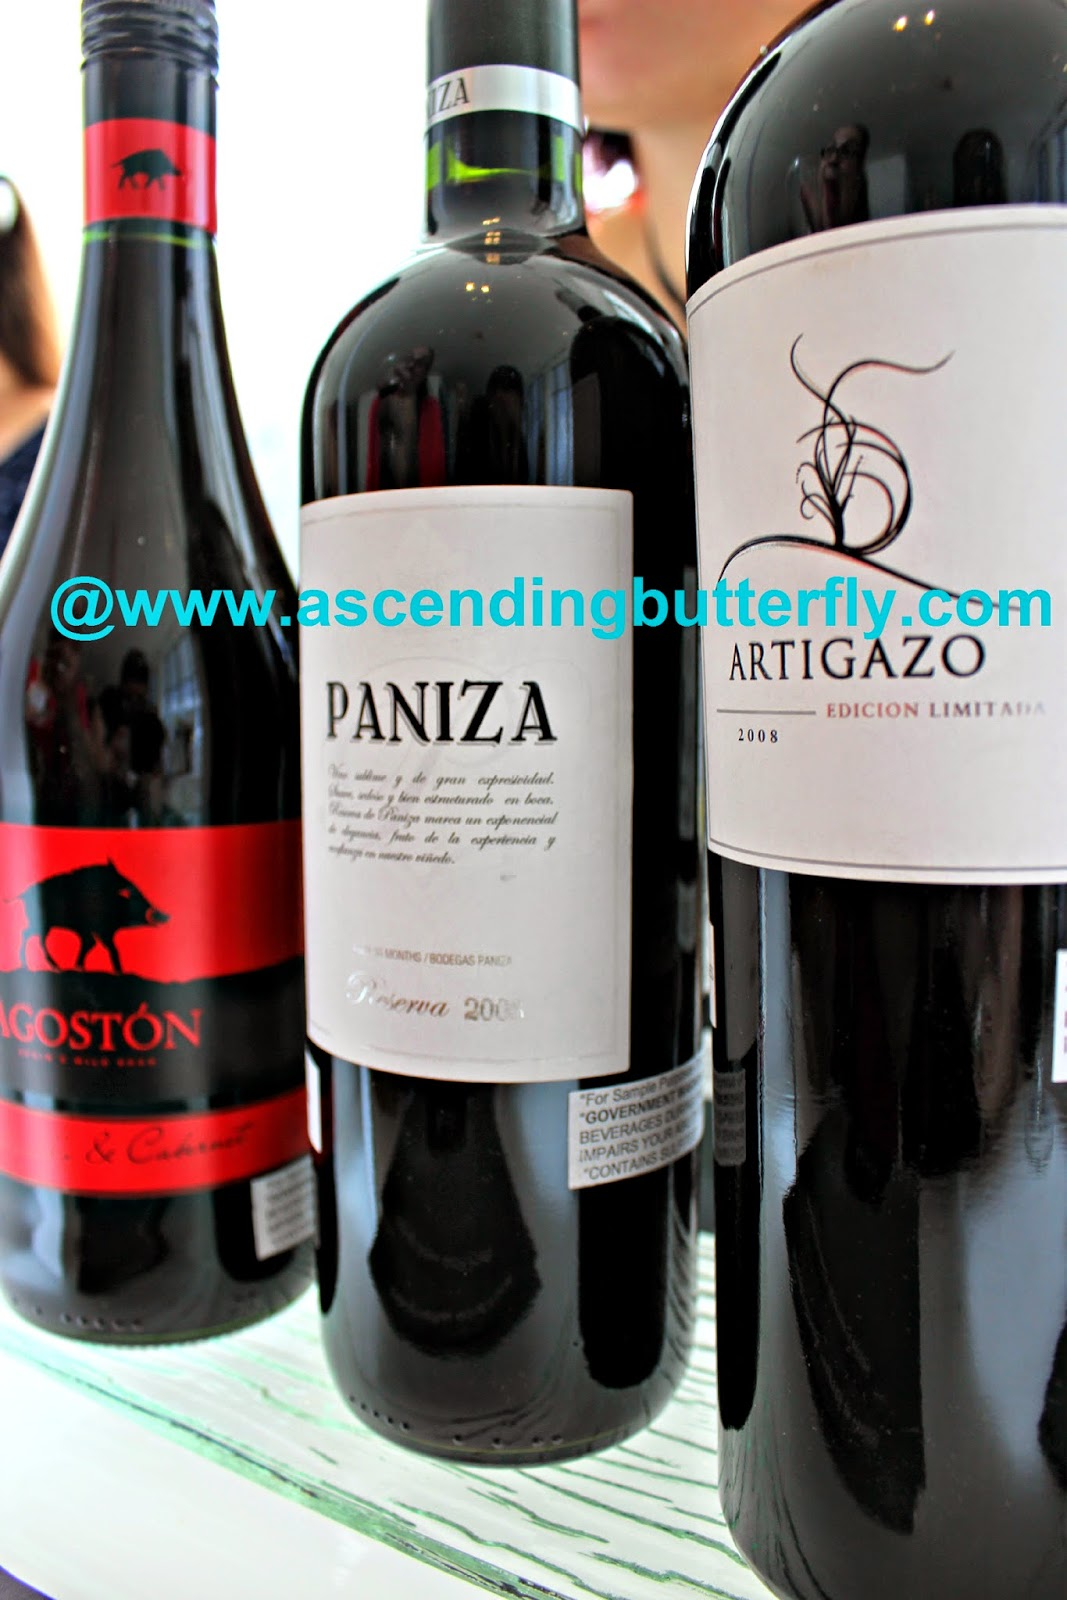 Agoston, Paniza, artigazo, Wines from Spain